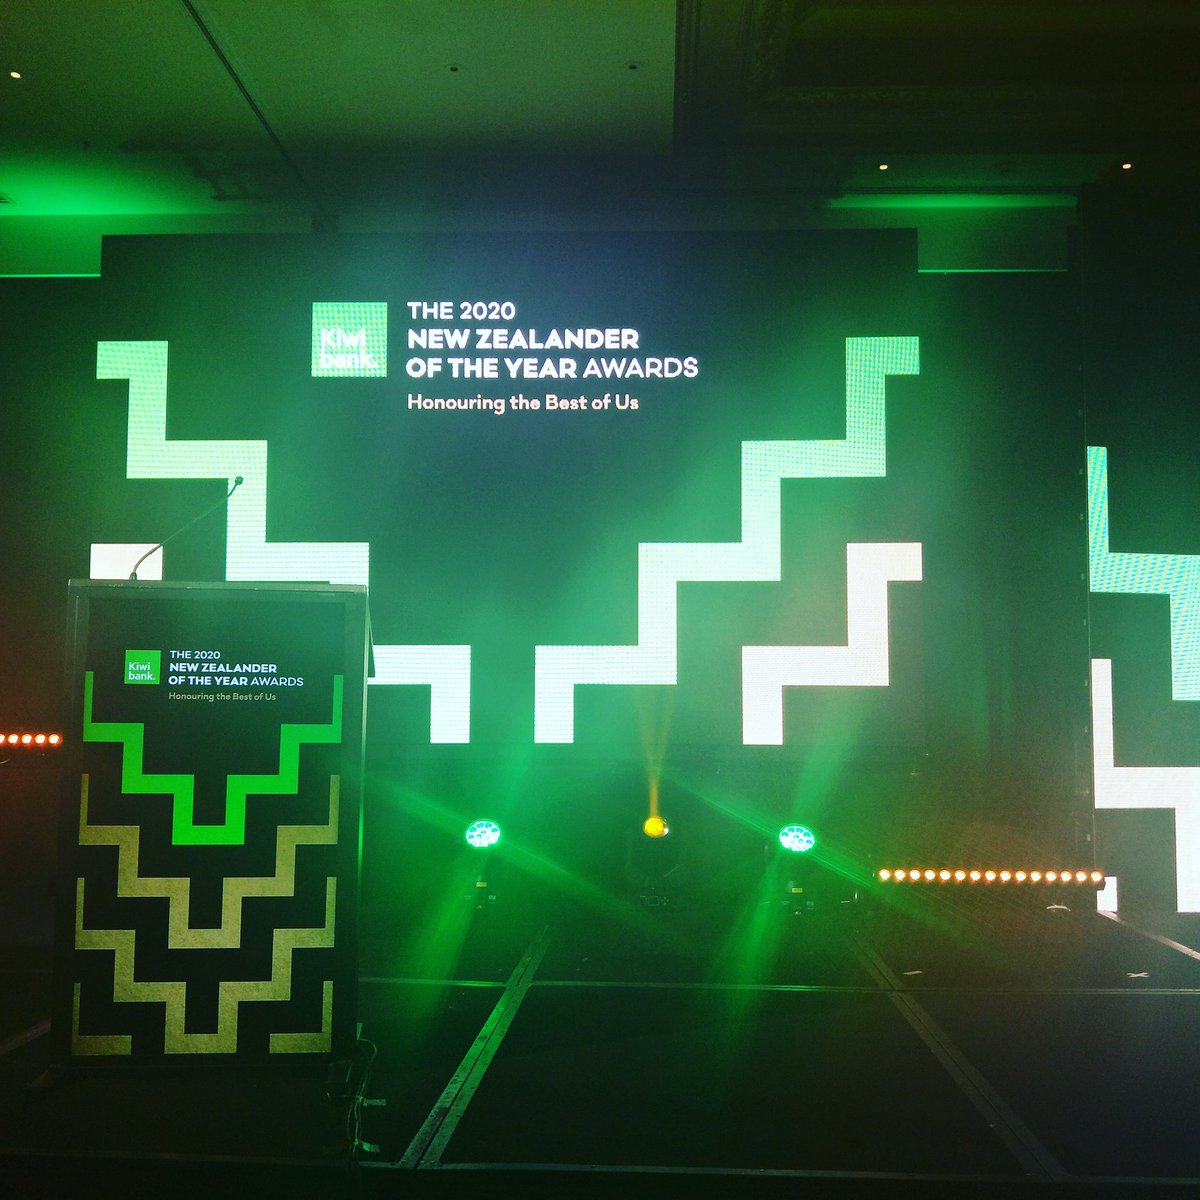 Kia ora! This evening we're at the New Zealander of the Year Awards Gala Dinner - who will be our 2020 New Zealander of the Year Awards winners? Stay tuned for highlights from the evening #bestofus #nzoty #nzoty2020pic.twitter.com/VLnrbhfwaA